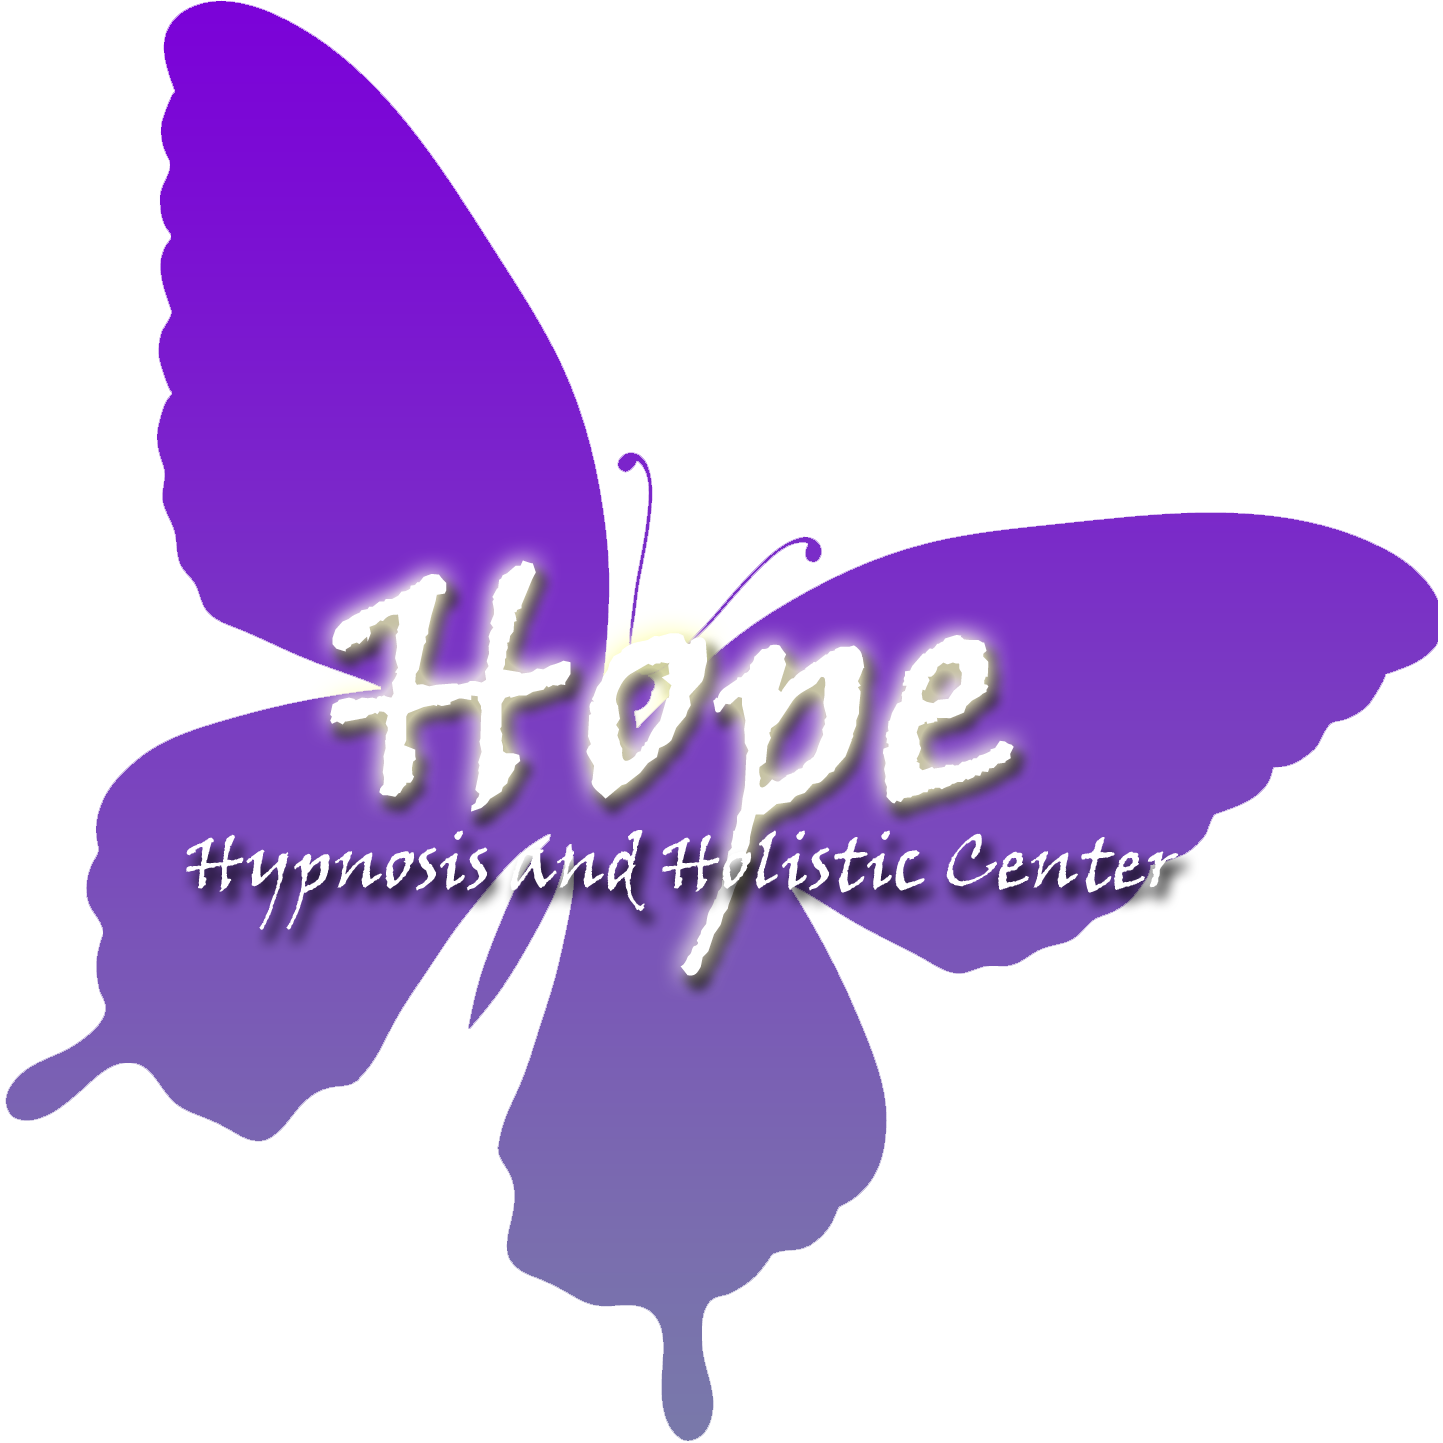 Hope Hypnosis & Holistic Center